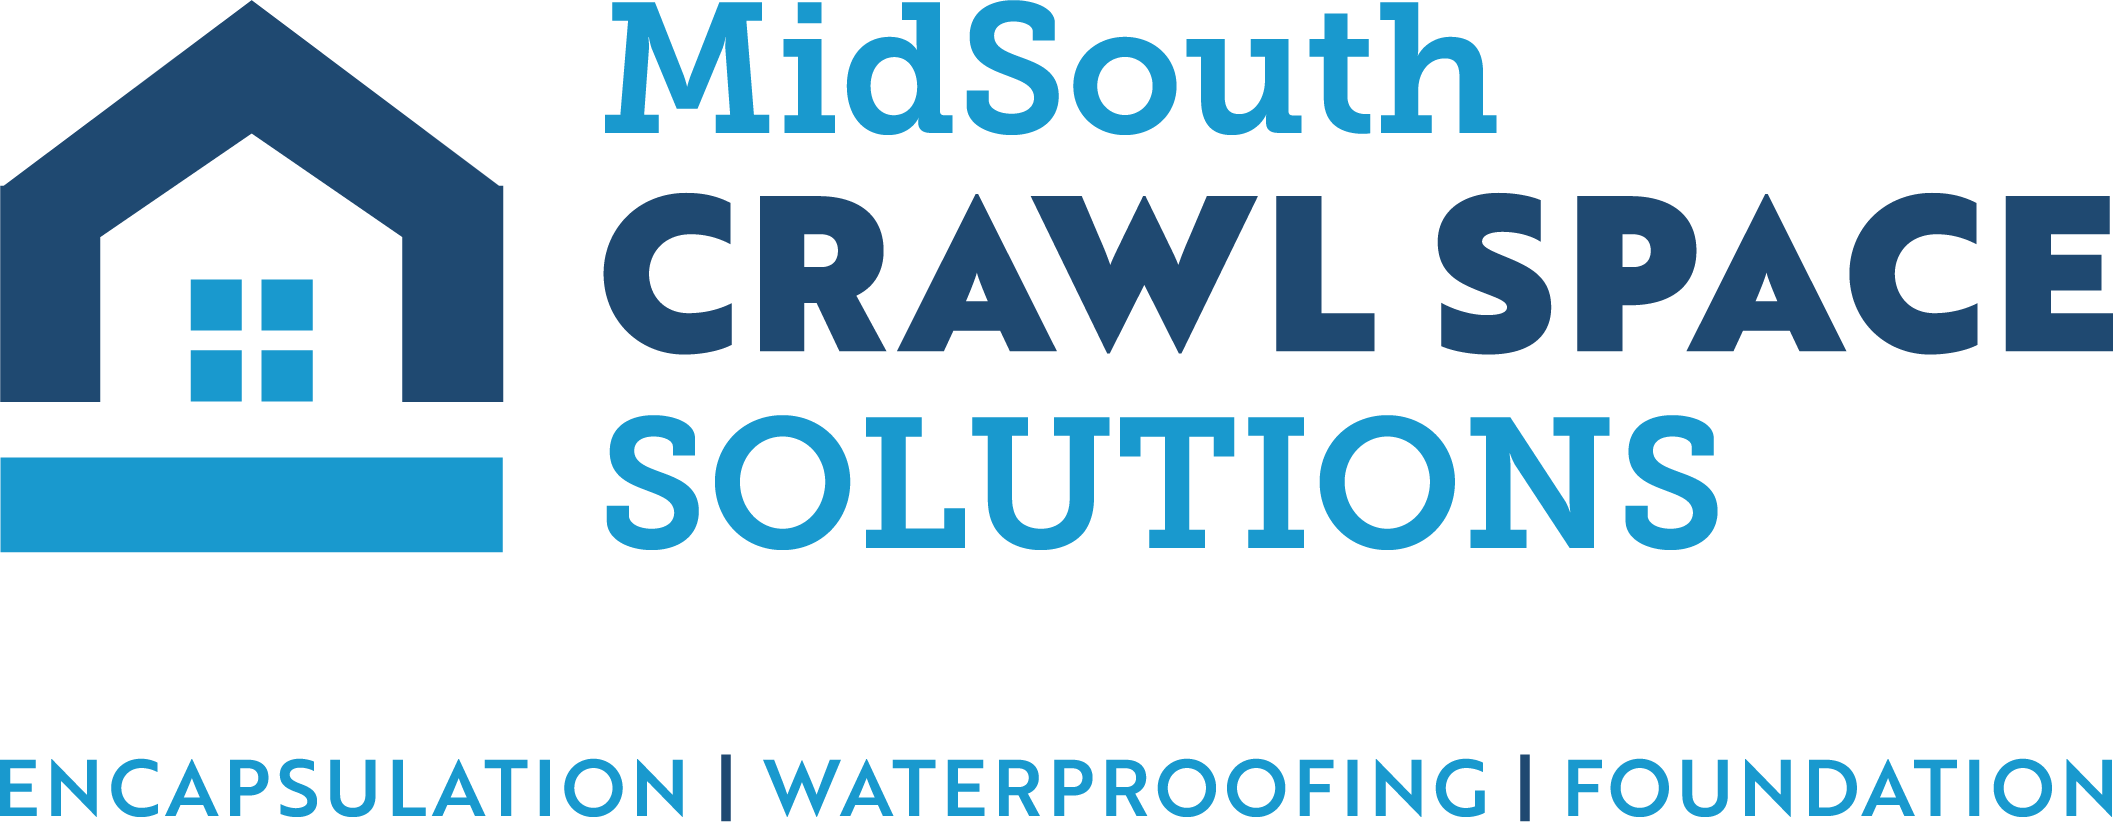 MidSouth Crawl Space Solutions Logo